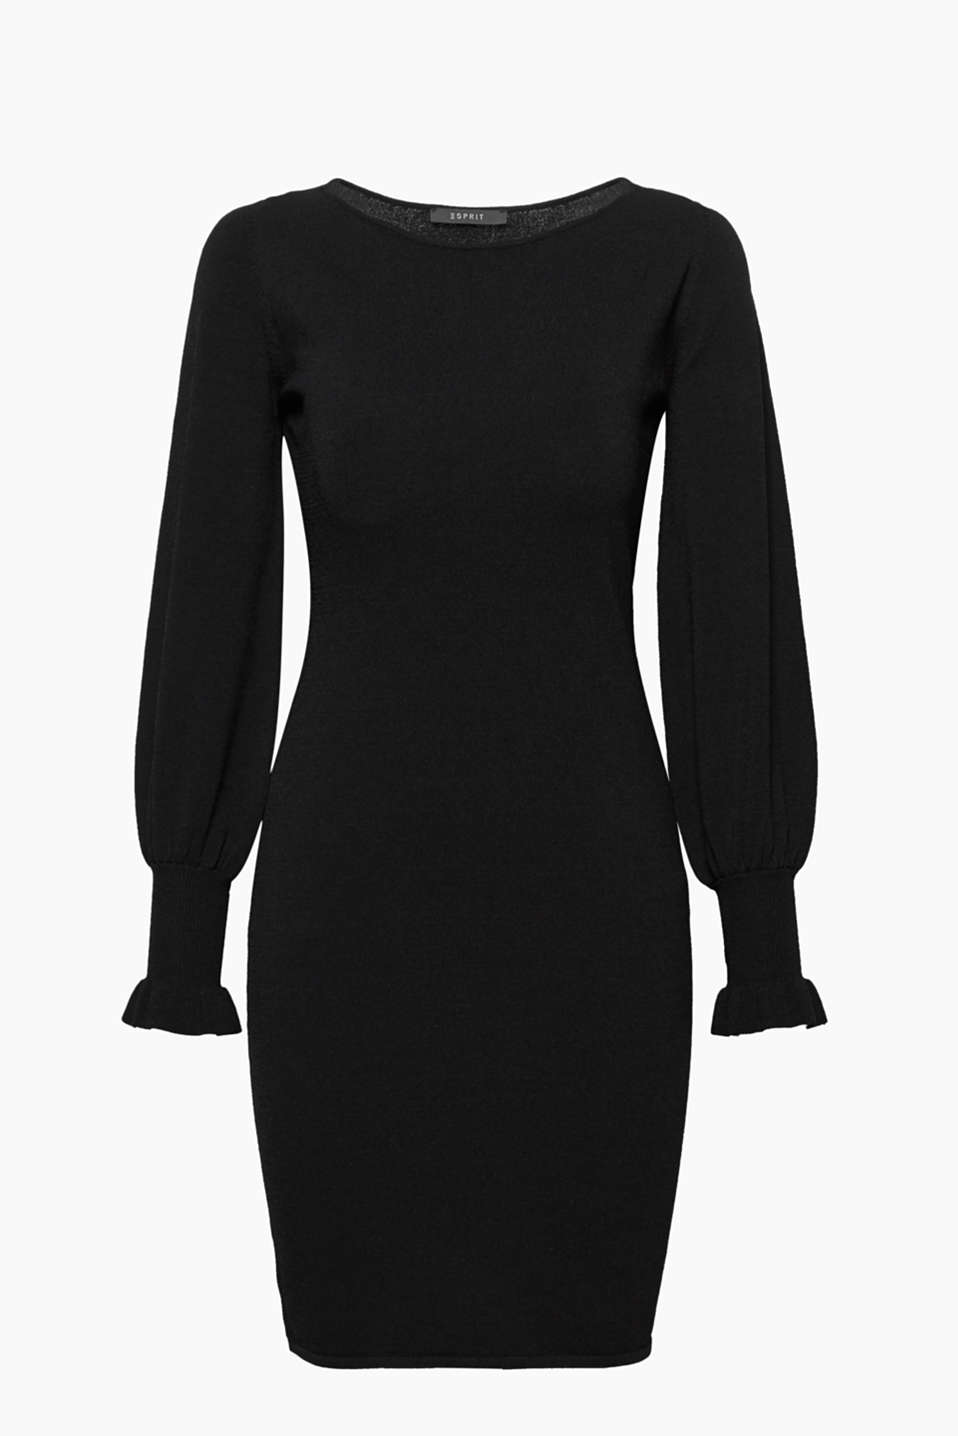 Elegant look, fashionable touch: This knitted dress in crêpe yarn combines top quality with ultra trendy balloon sleeves!